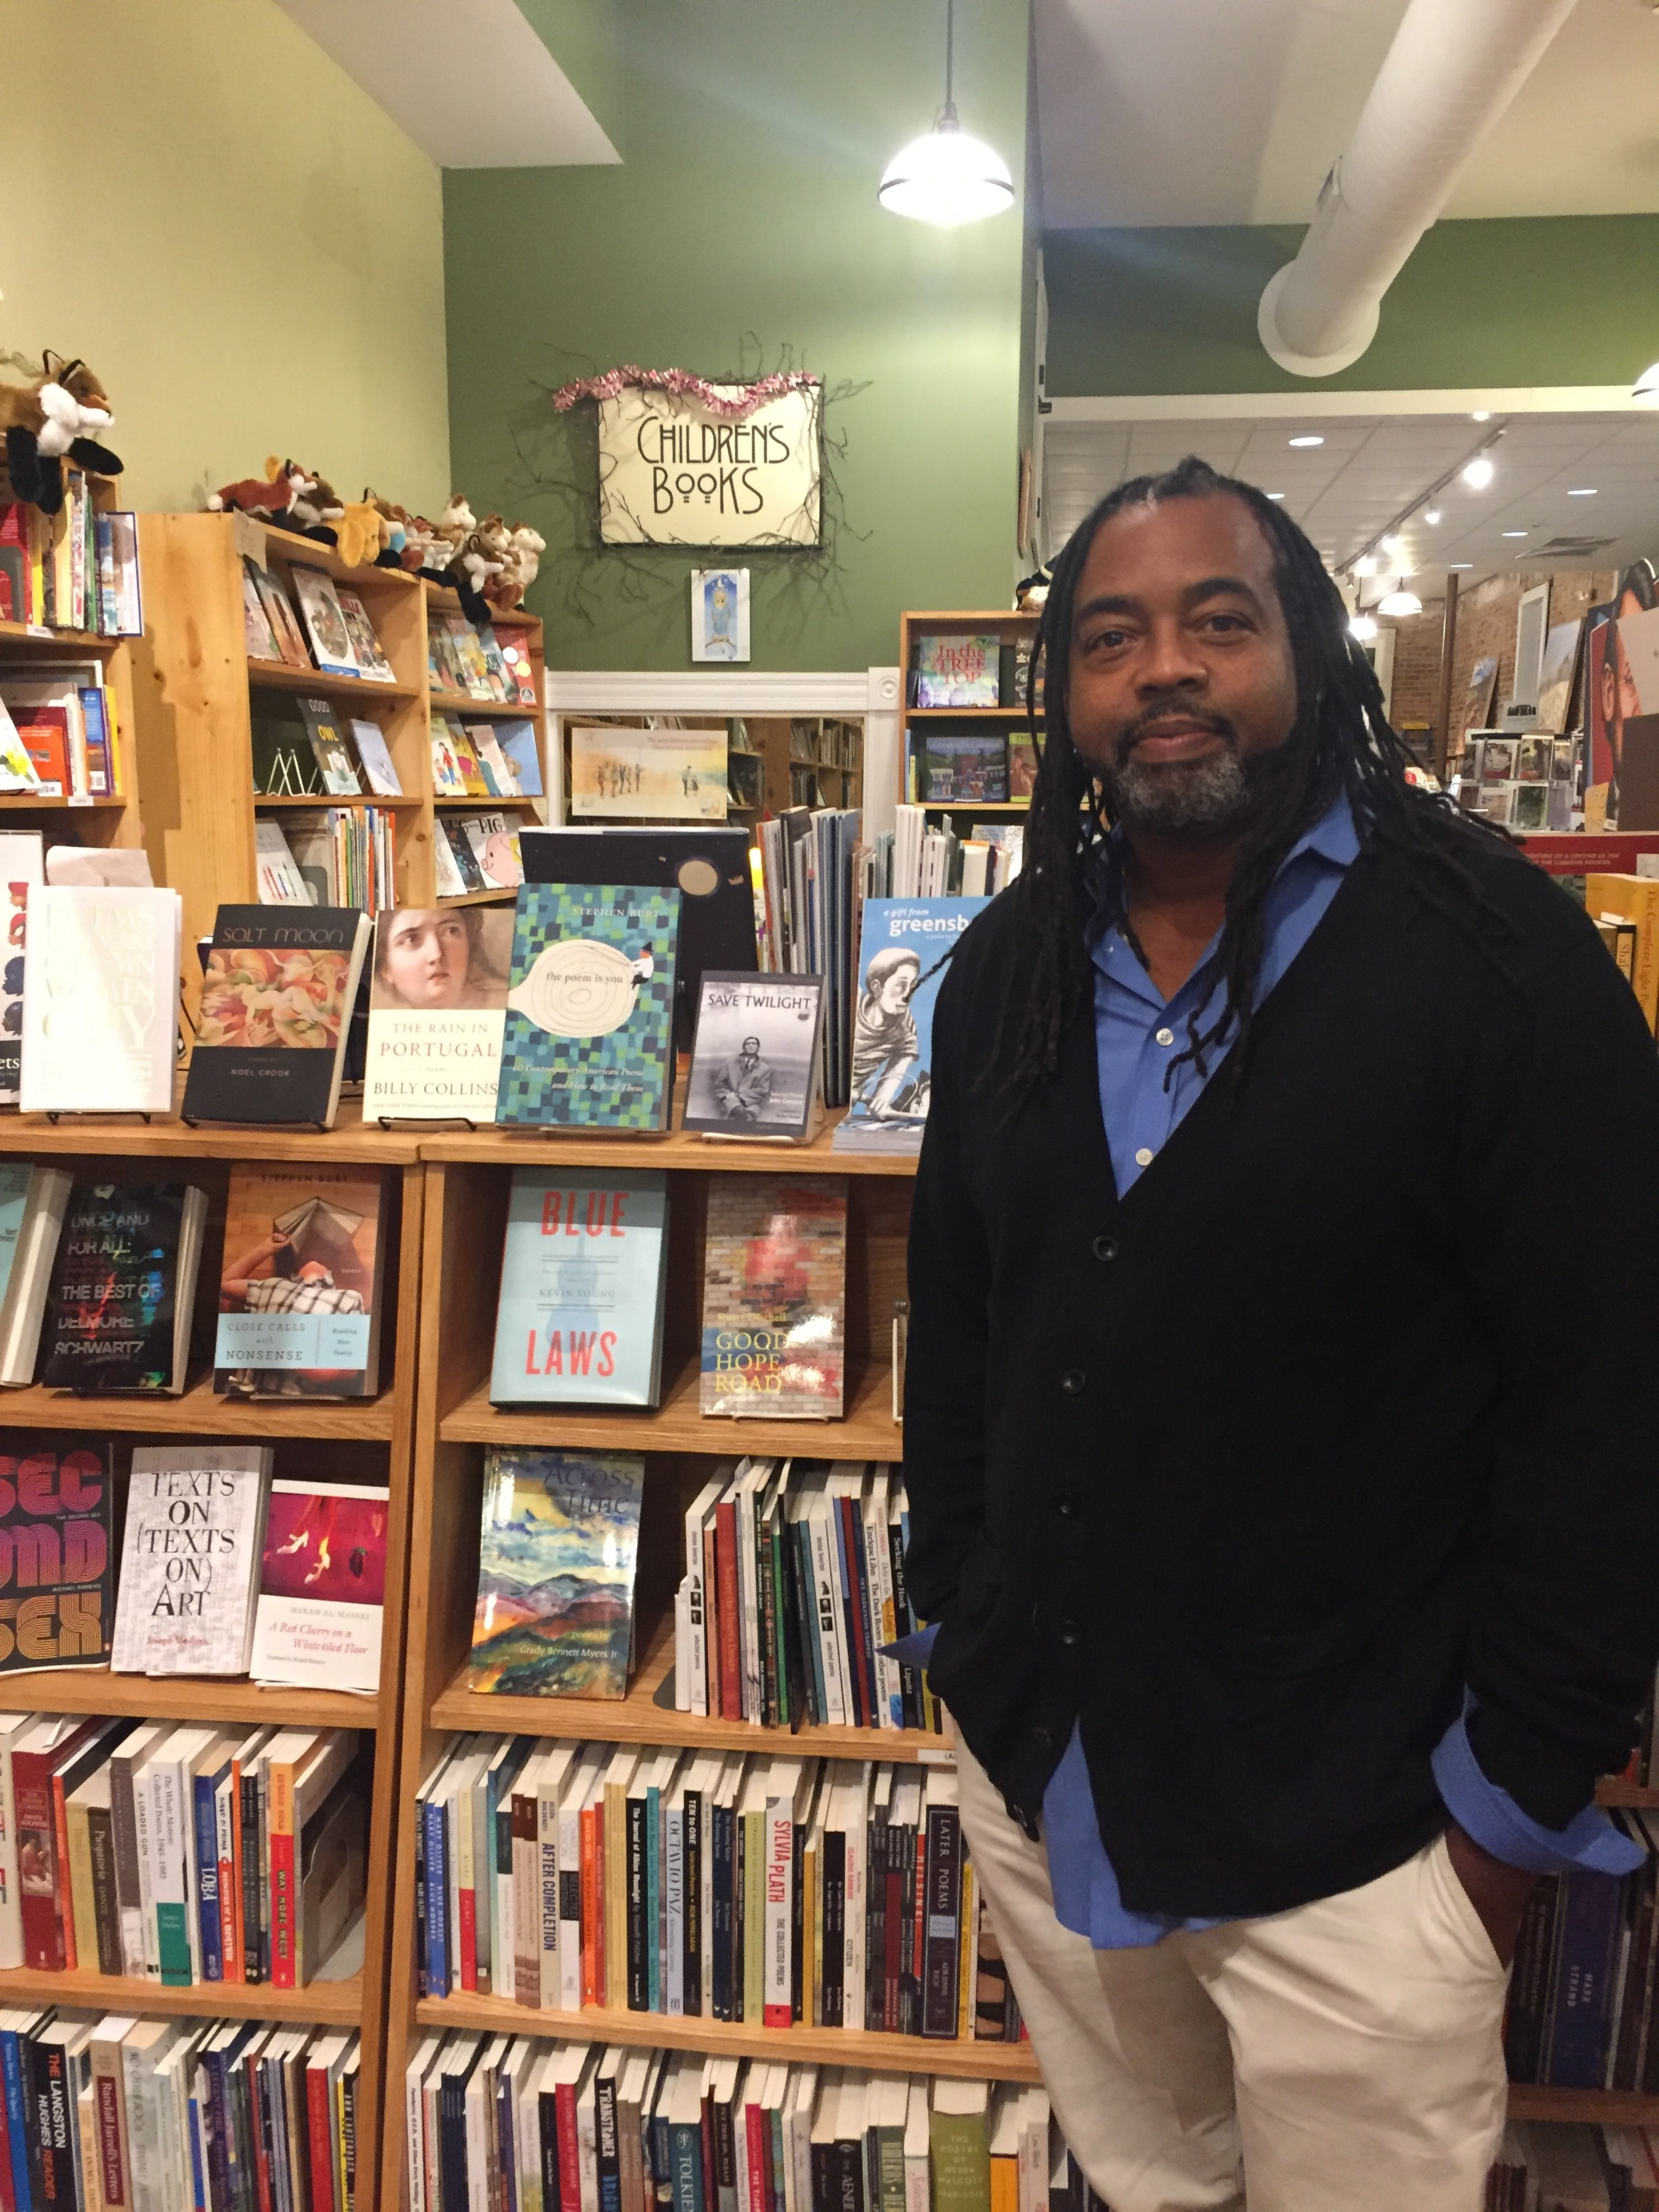 Quraysh Ali Lansana at Scuppernong Books in Greensboro.  A Gift from Greensboro  is peeking out from behind him.